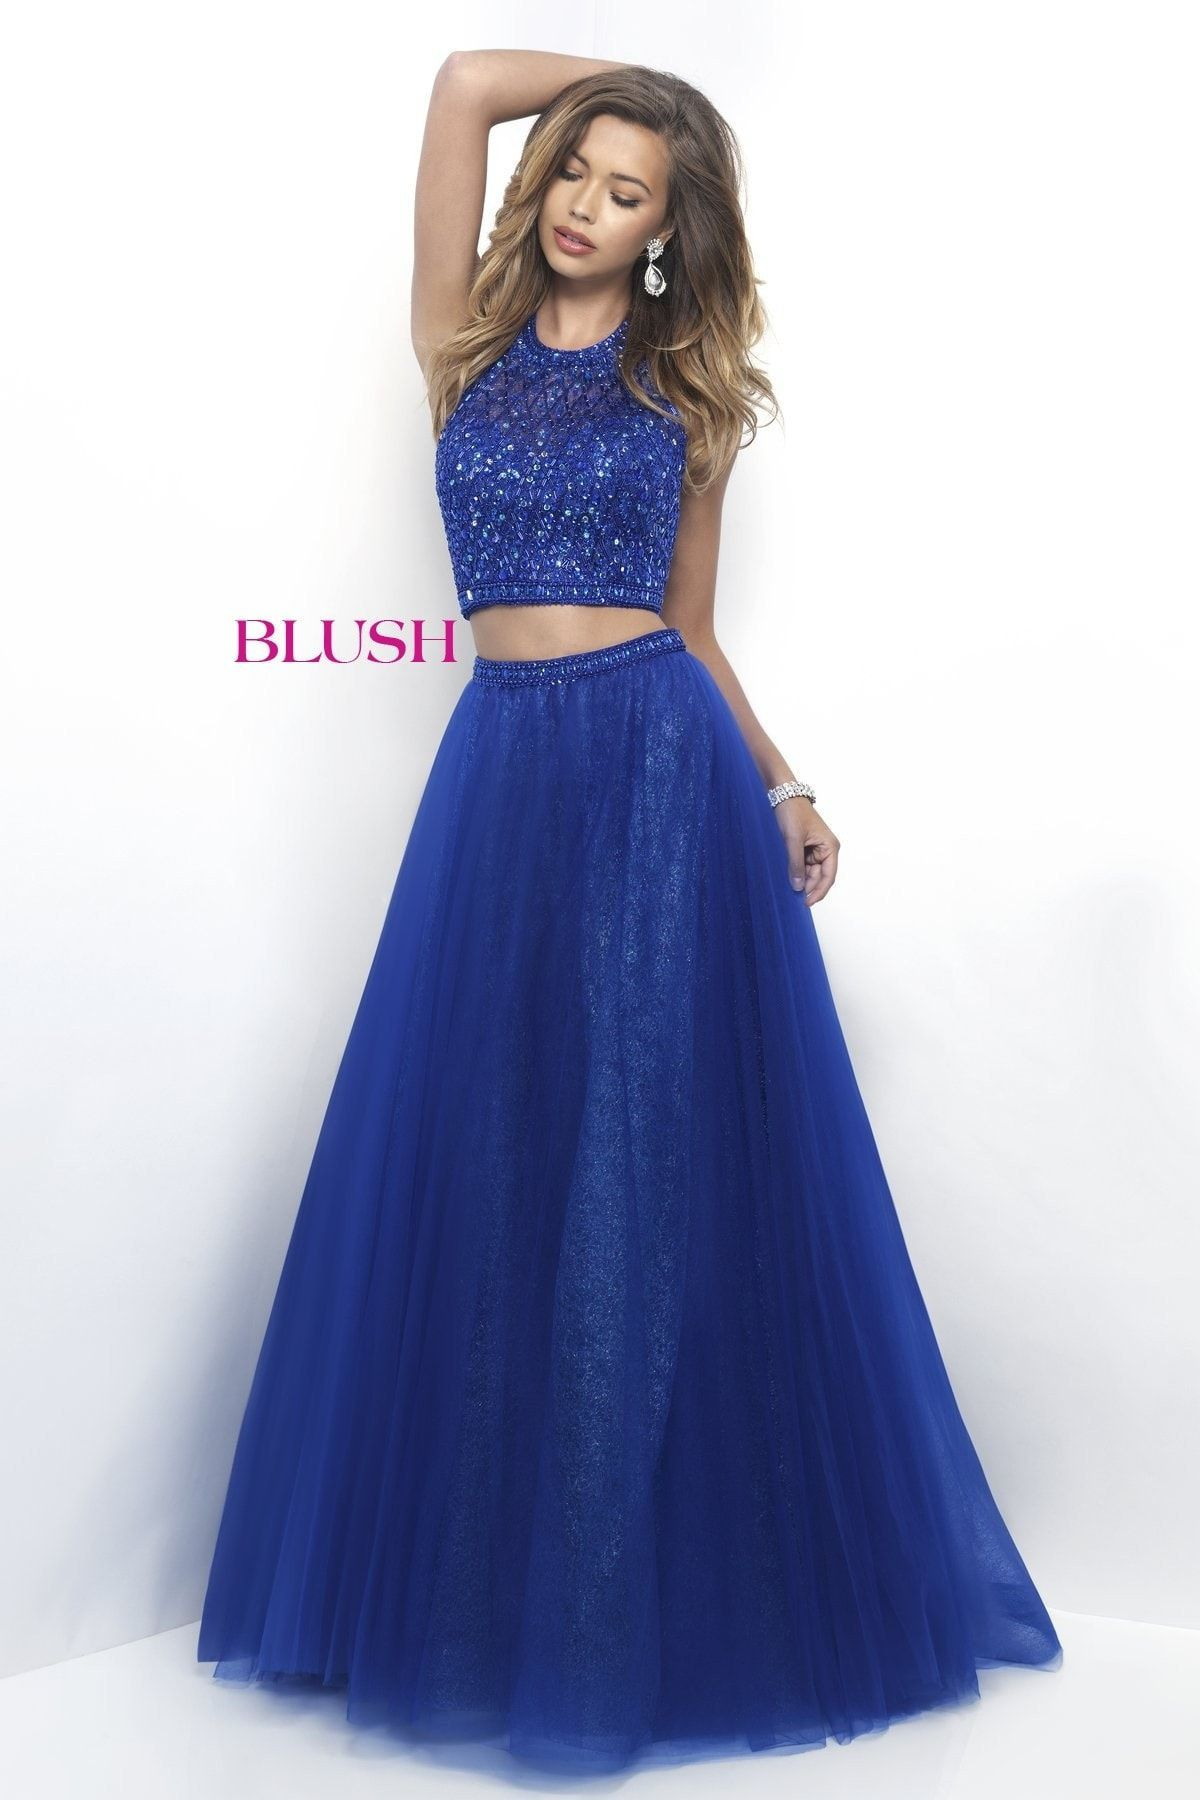 Blush prom sapphire halter two piece prom dress products